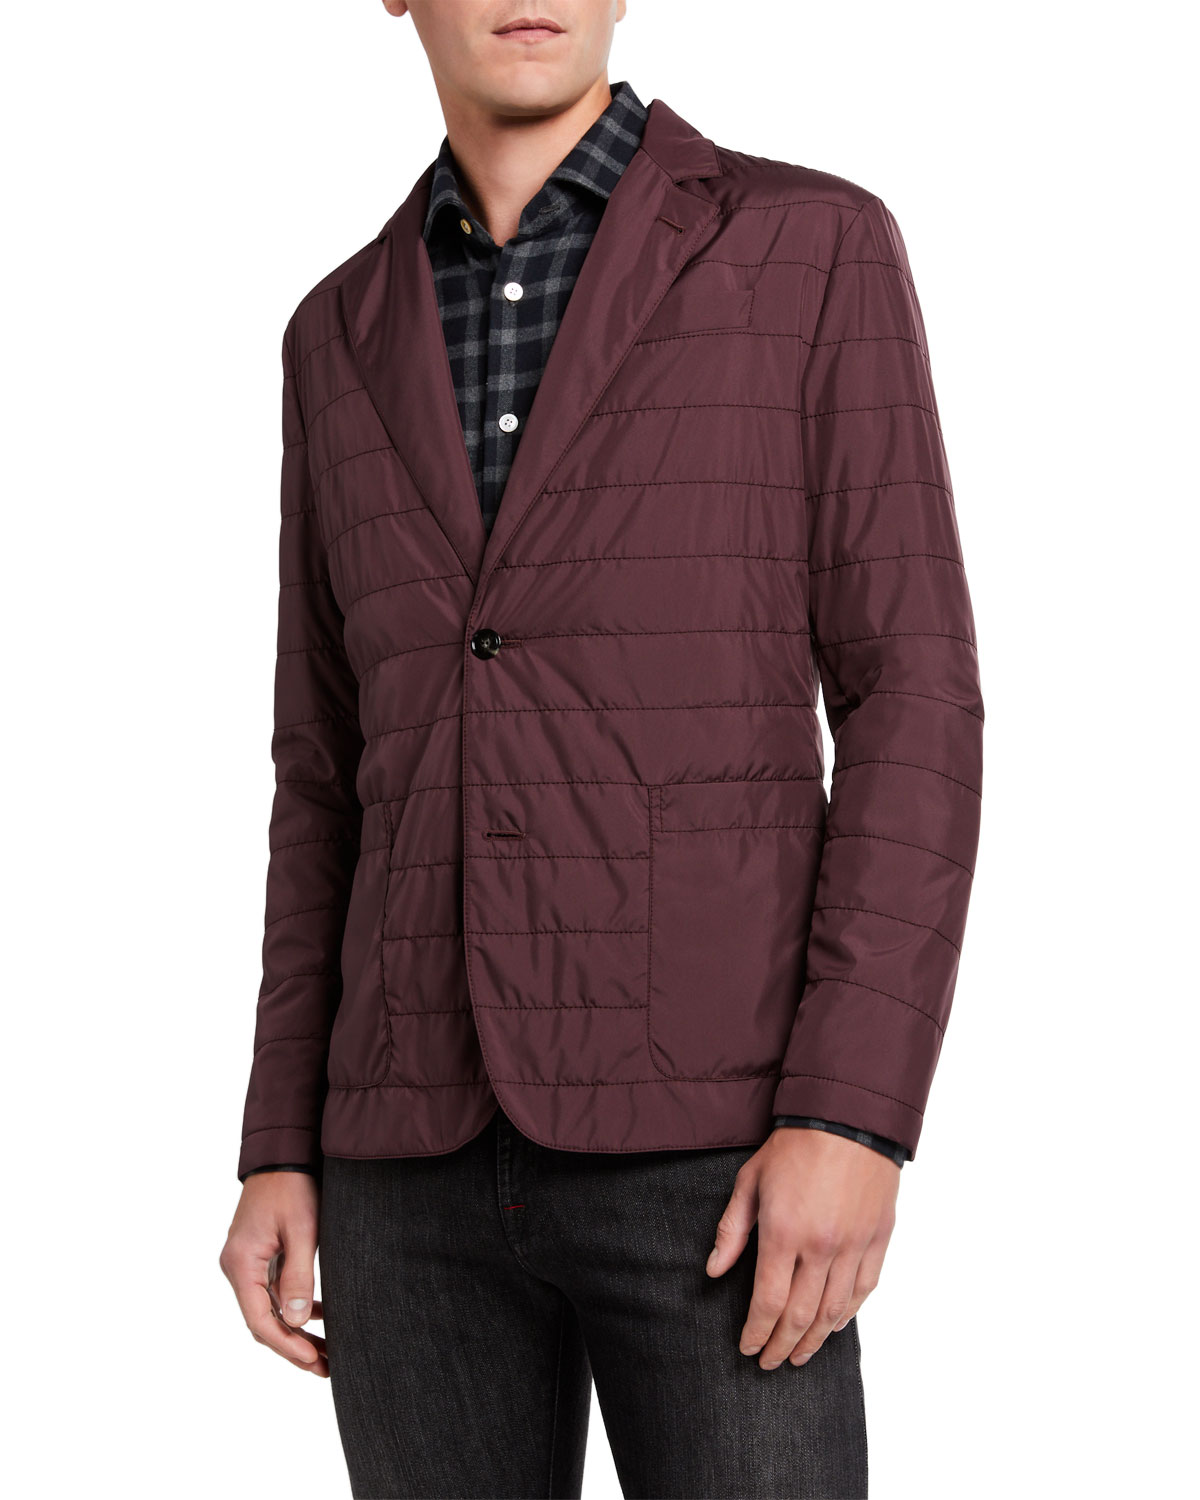 Kiton Jackets MEN'S QUILTED PACKABLE TWO-BUTTON JACKET